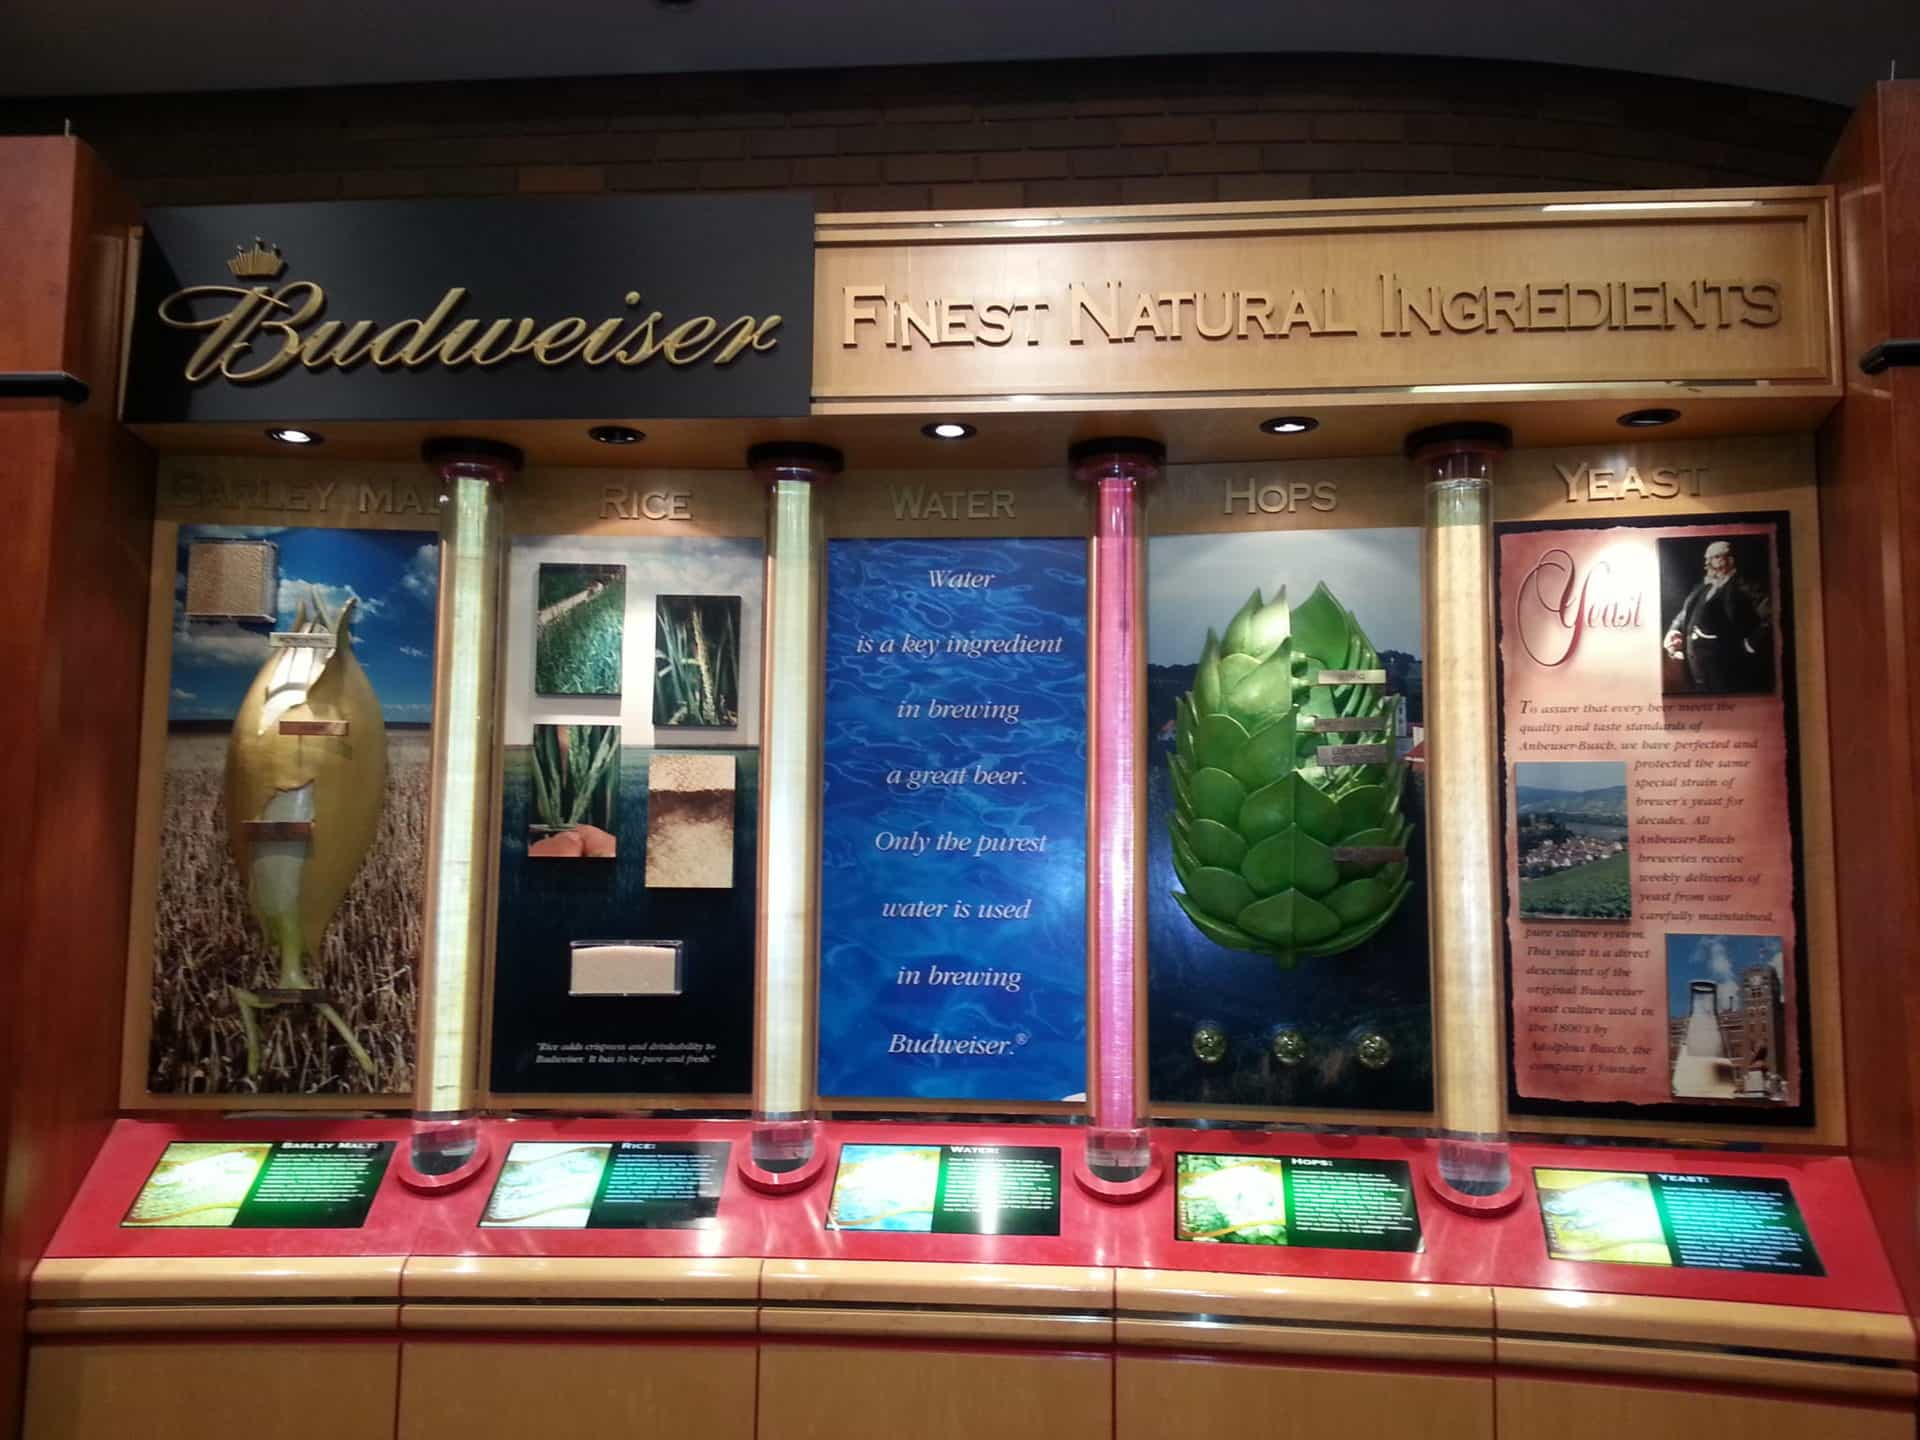 Budweiser Brewery Tour, St. Louis, MO - Displays of history